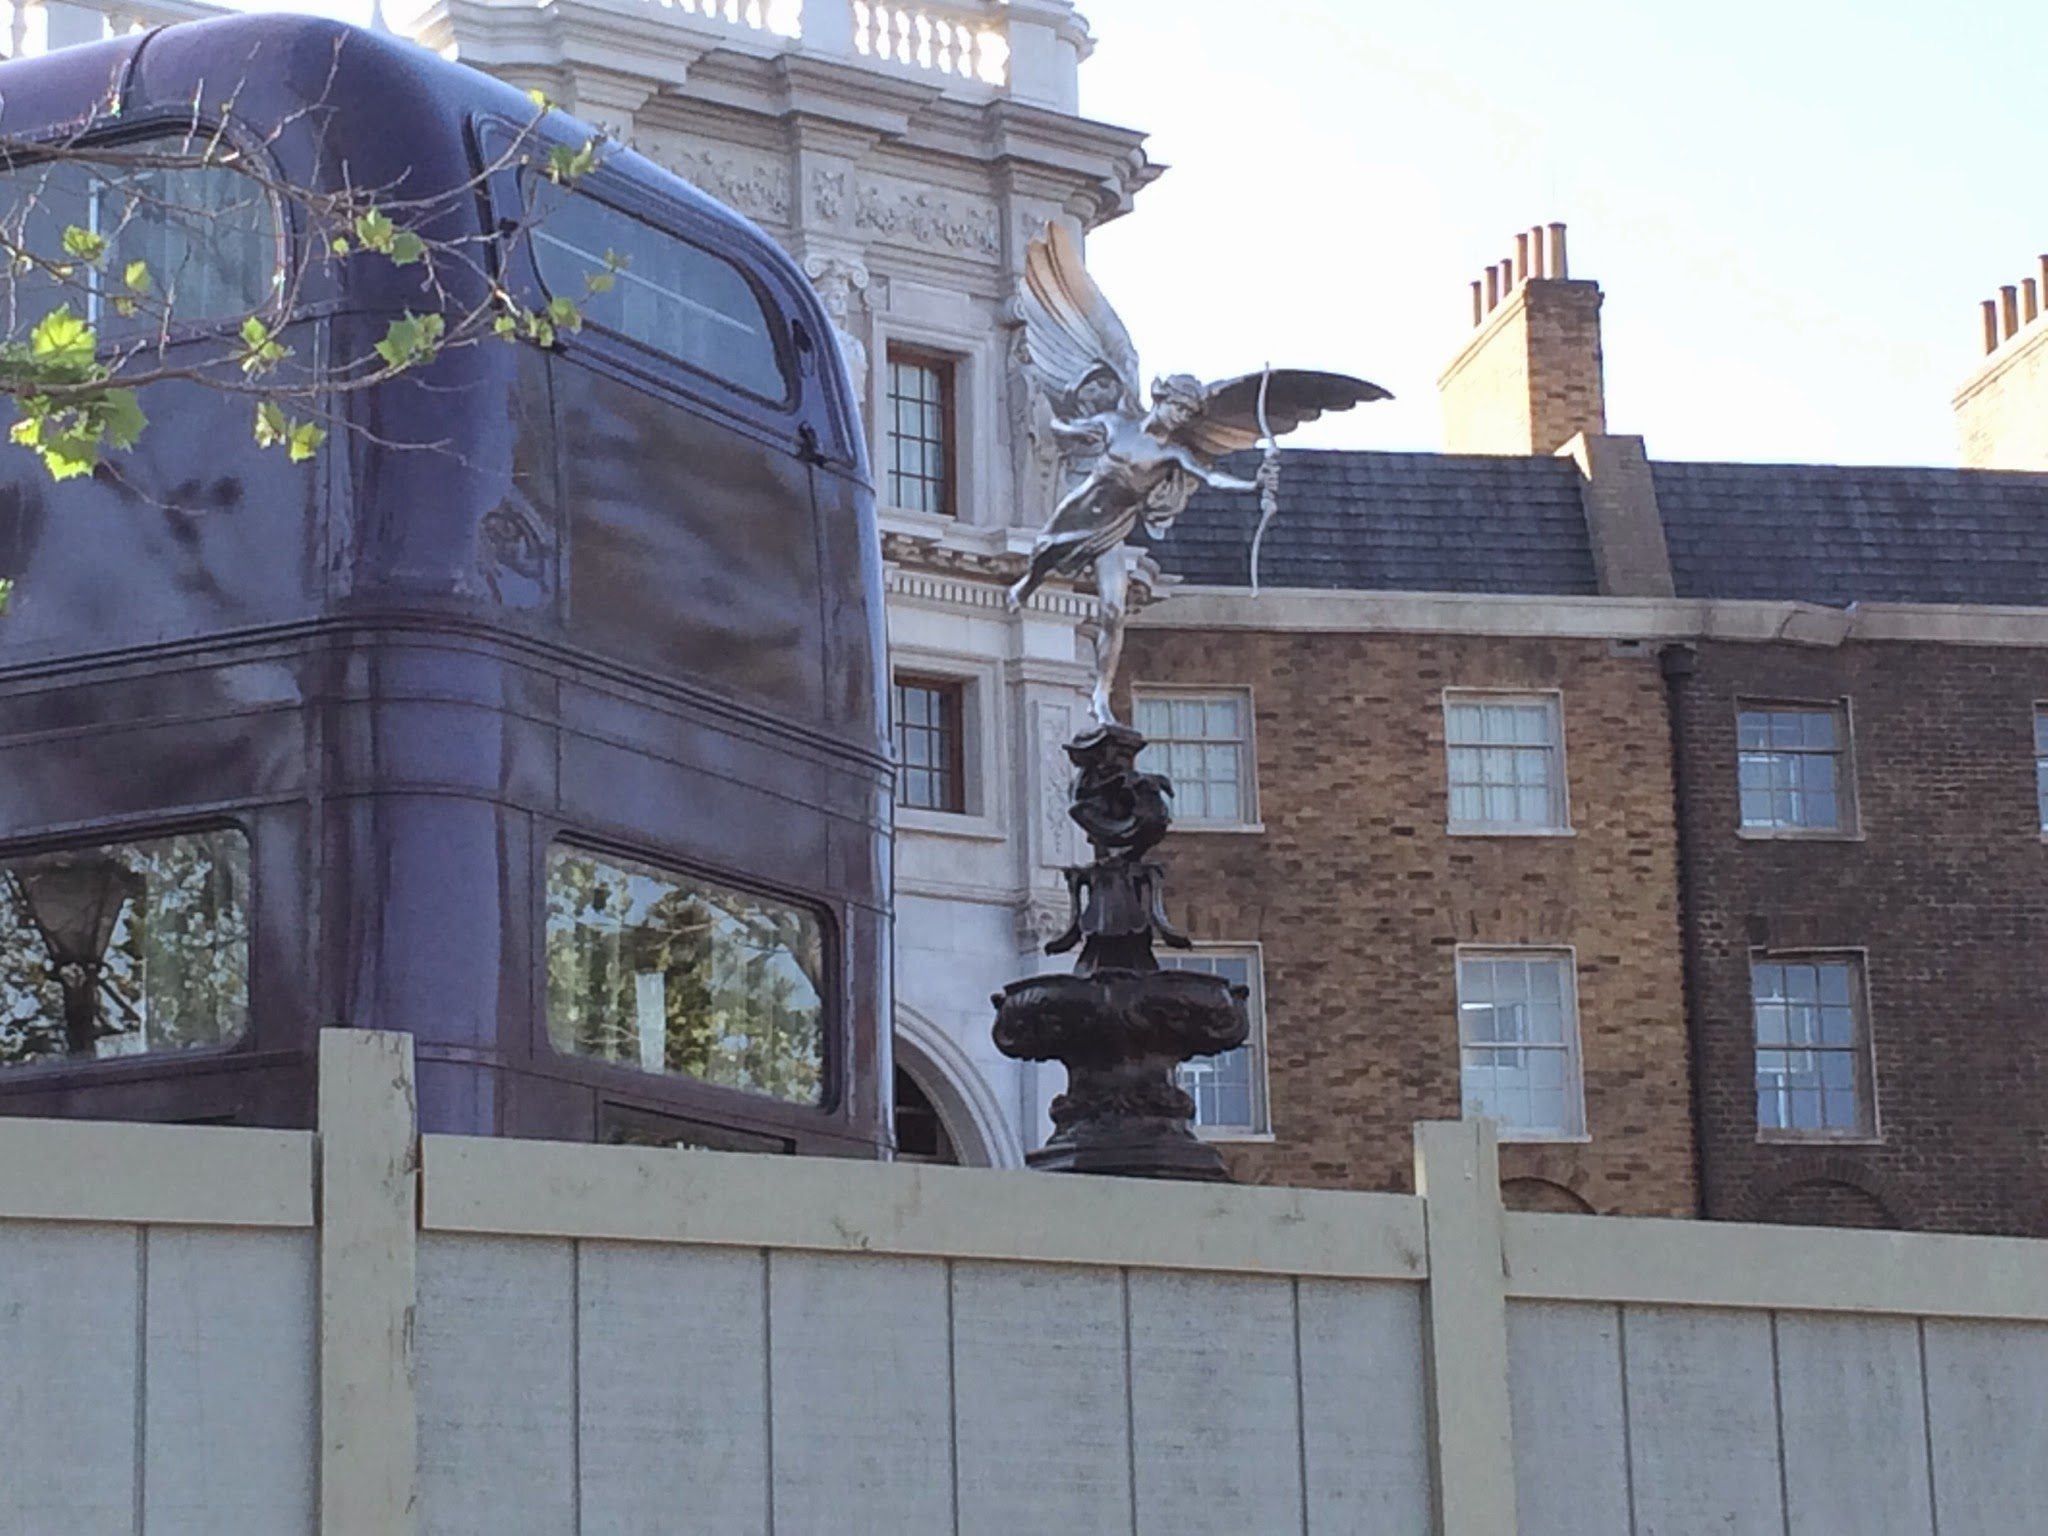 today show universal studios sweepstakes potterwatch piccadilly circus fountain installed today 9153